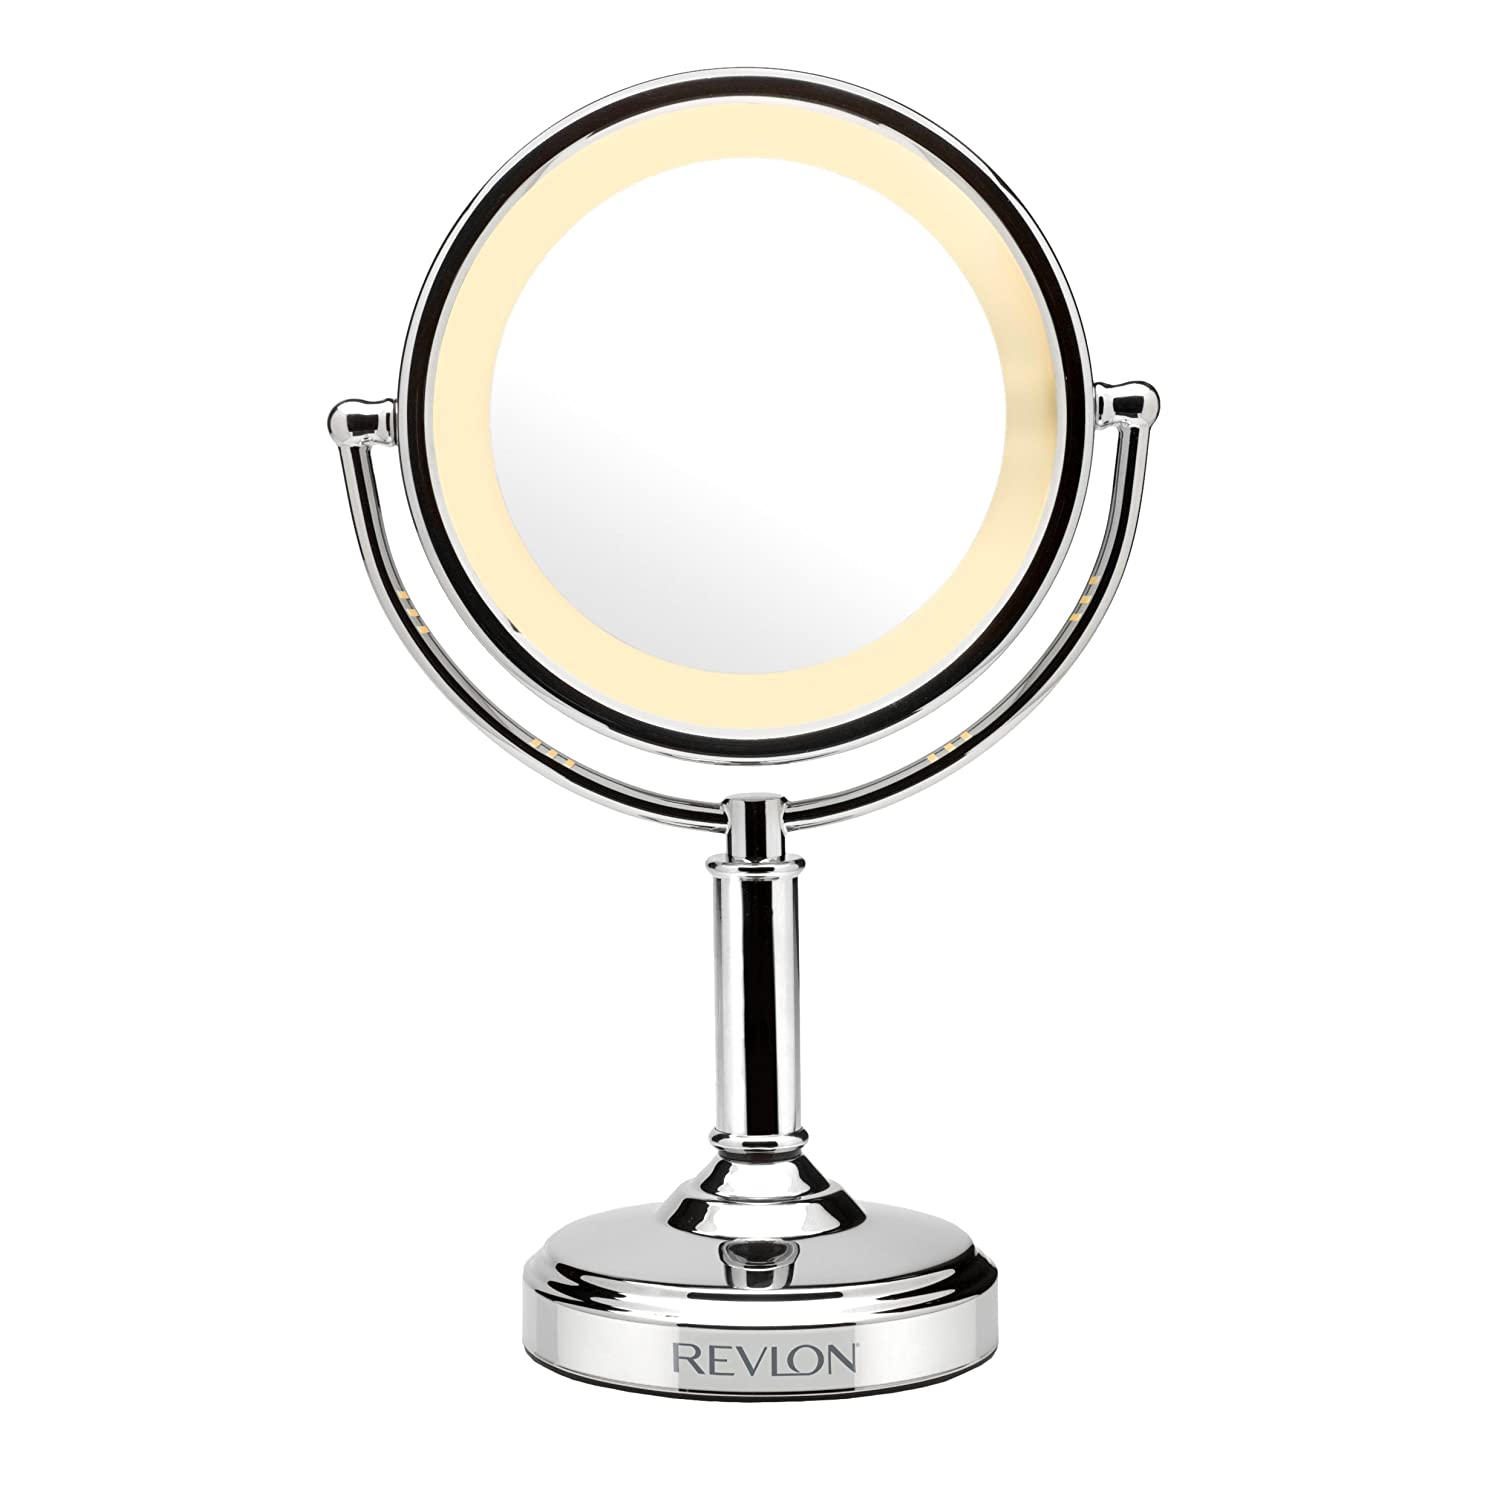 make up mirror double sided light up touch control 3 magnification. Black Bedroom Furniture Sets. Home Design Ideas